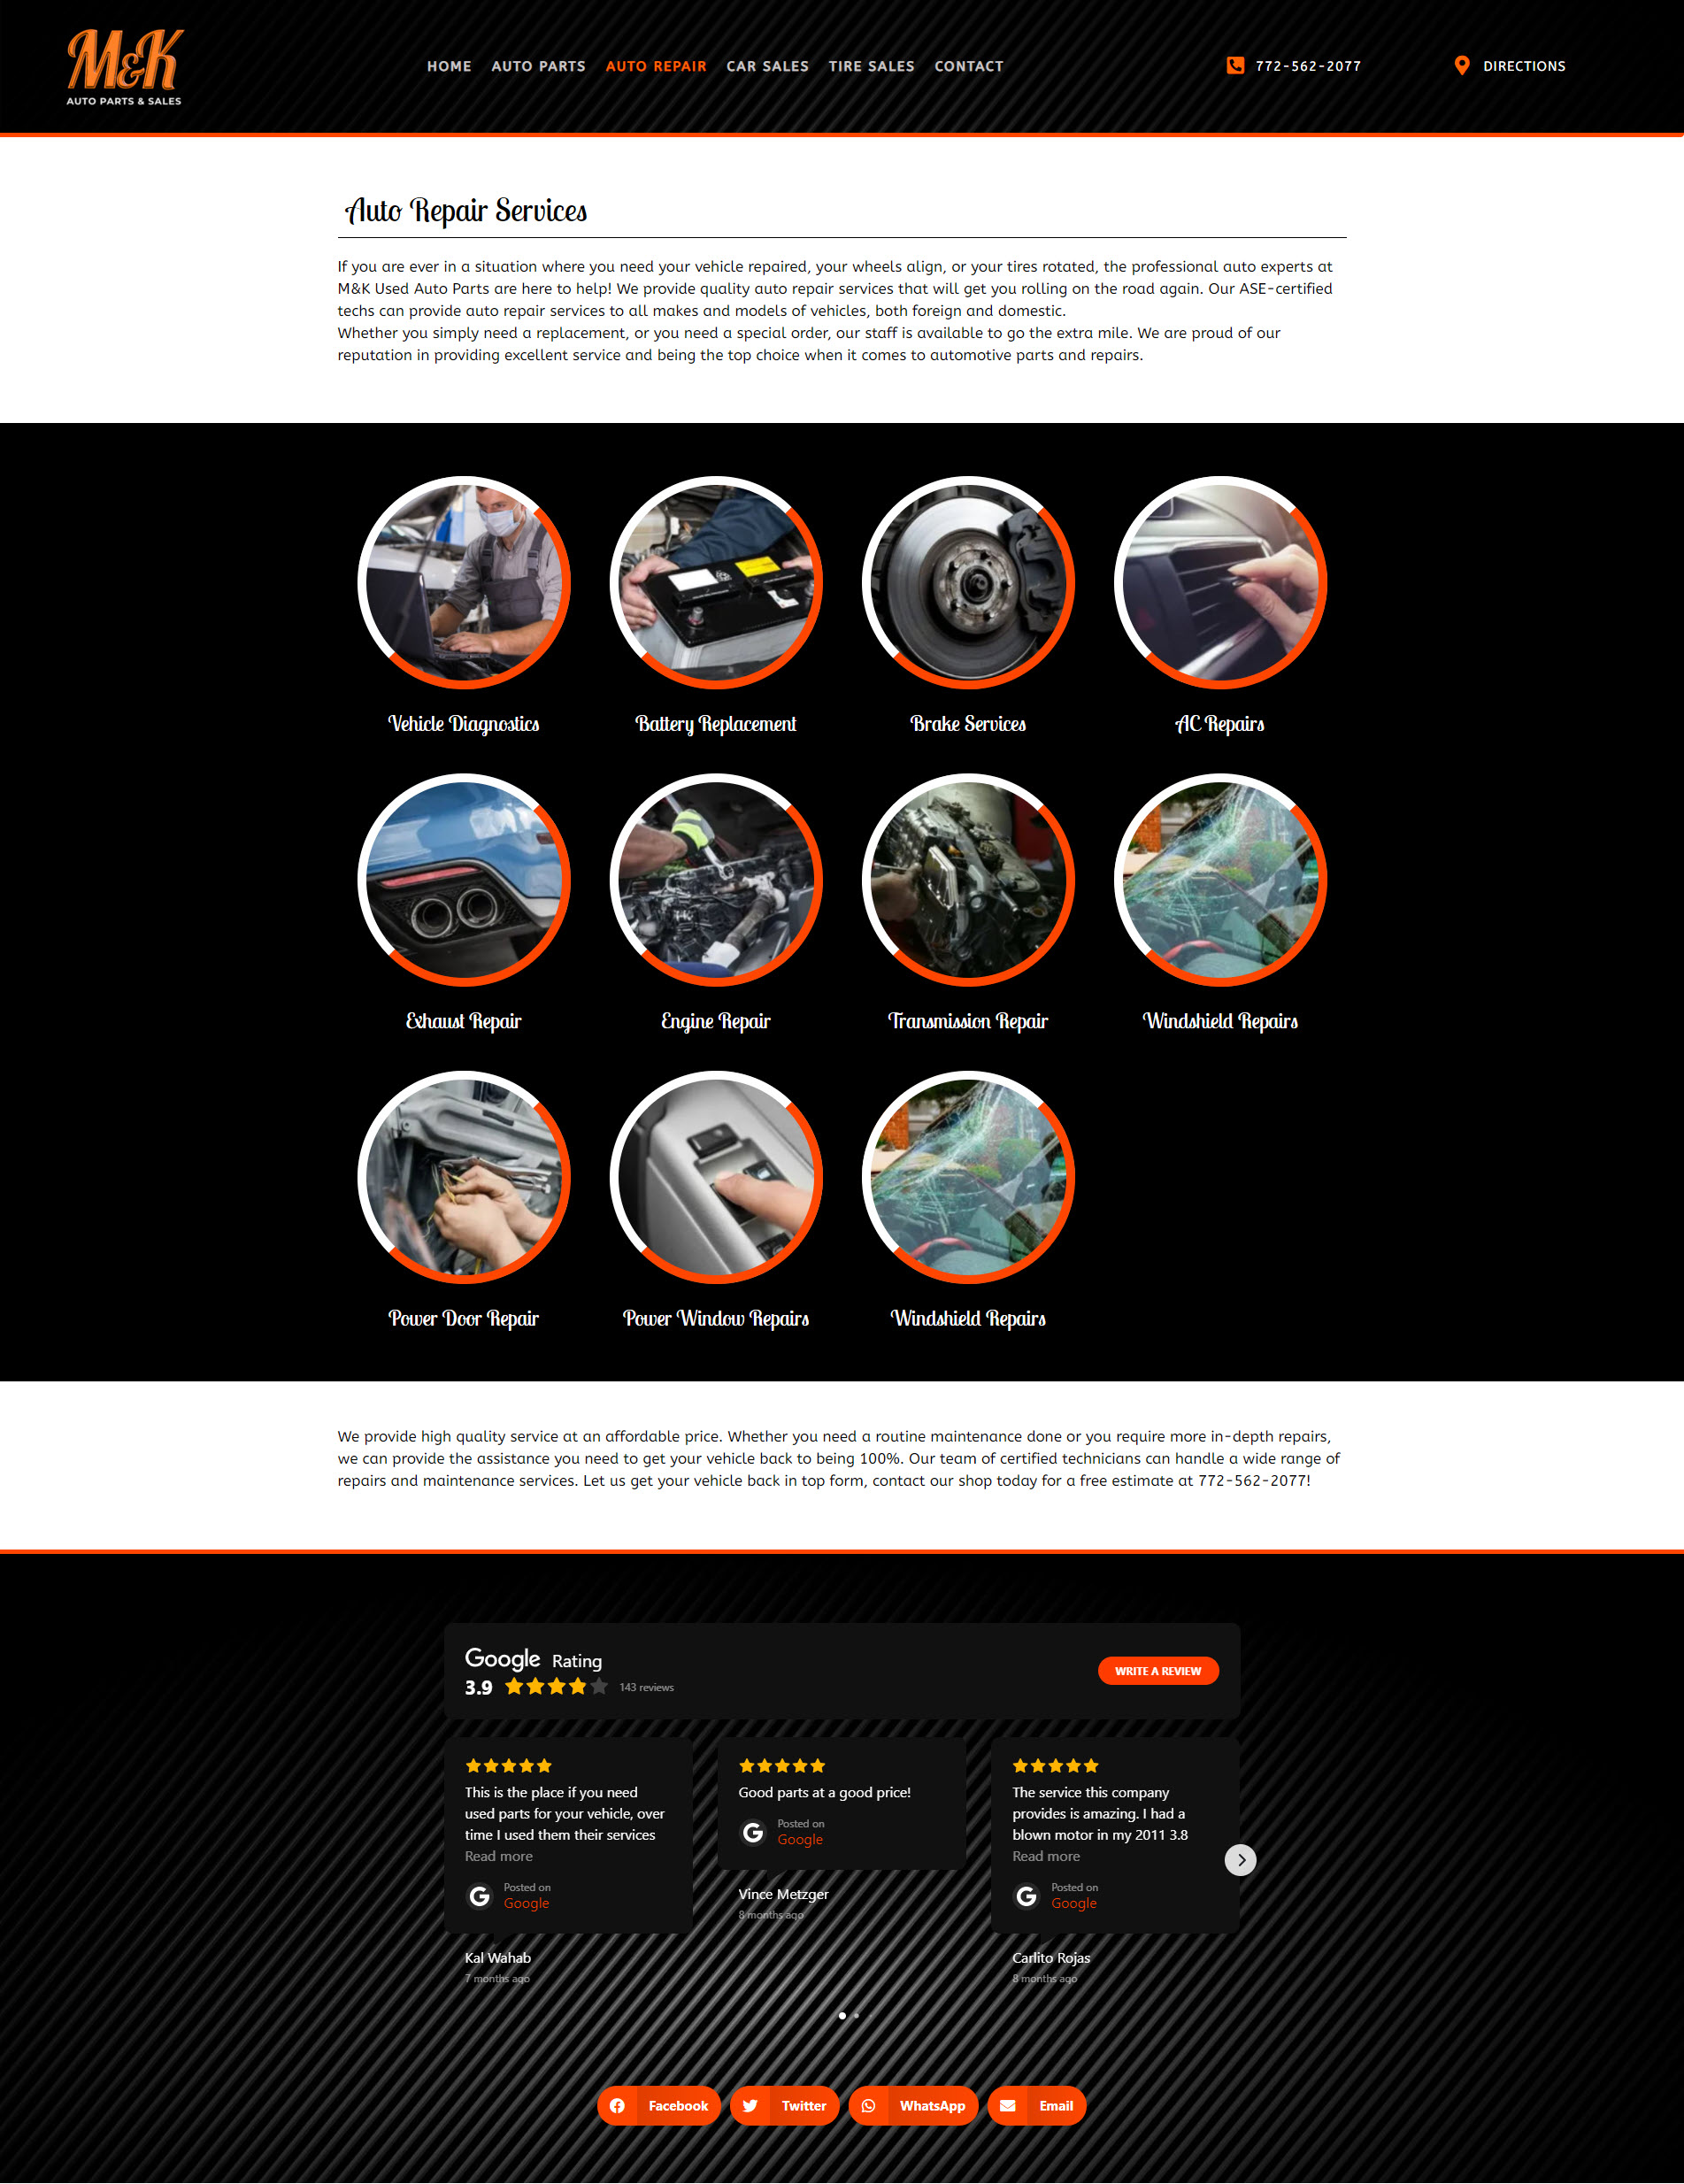 Design & Marketing For a Local Auto Parts & Repairs Company 5